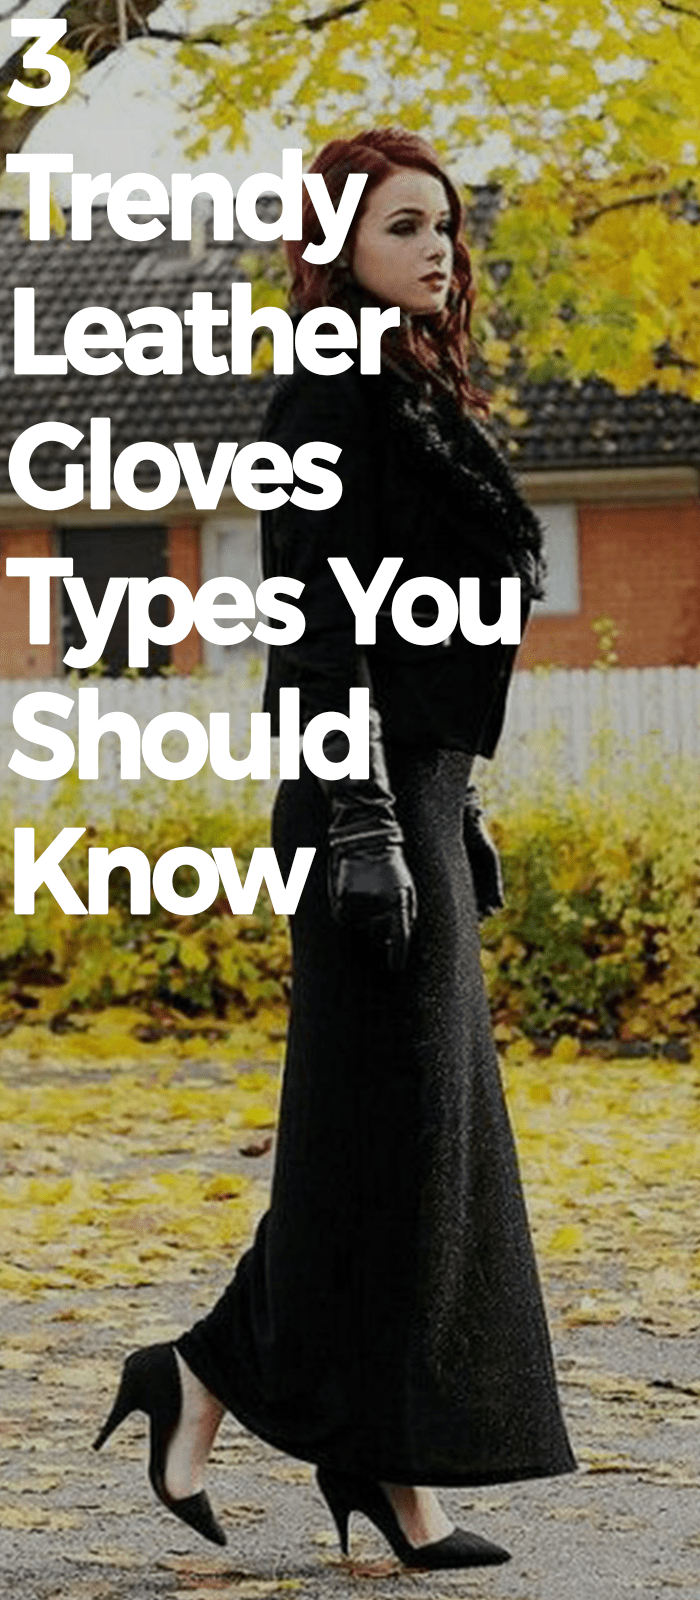 3 Trendy Leather Gloves Types You Should Know.